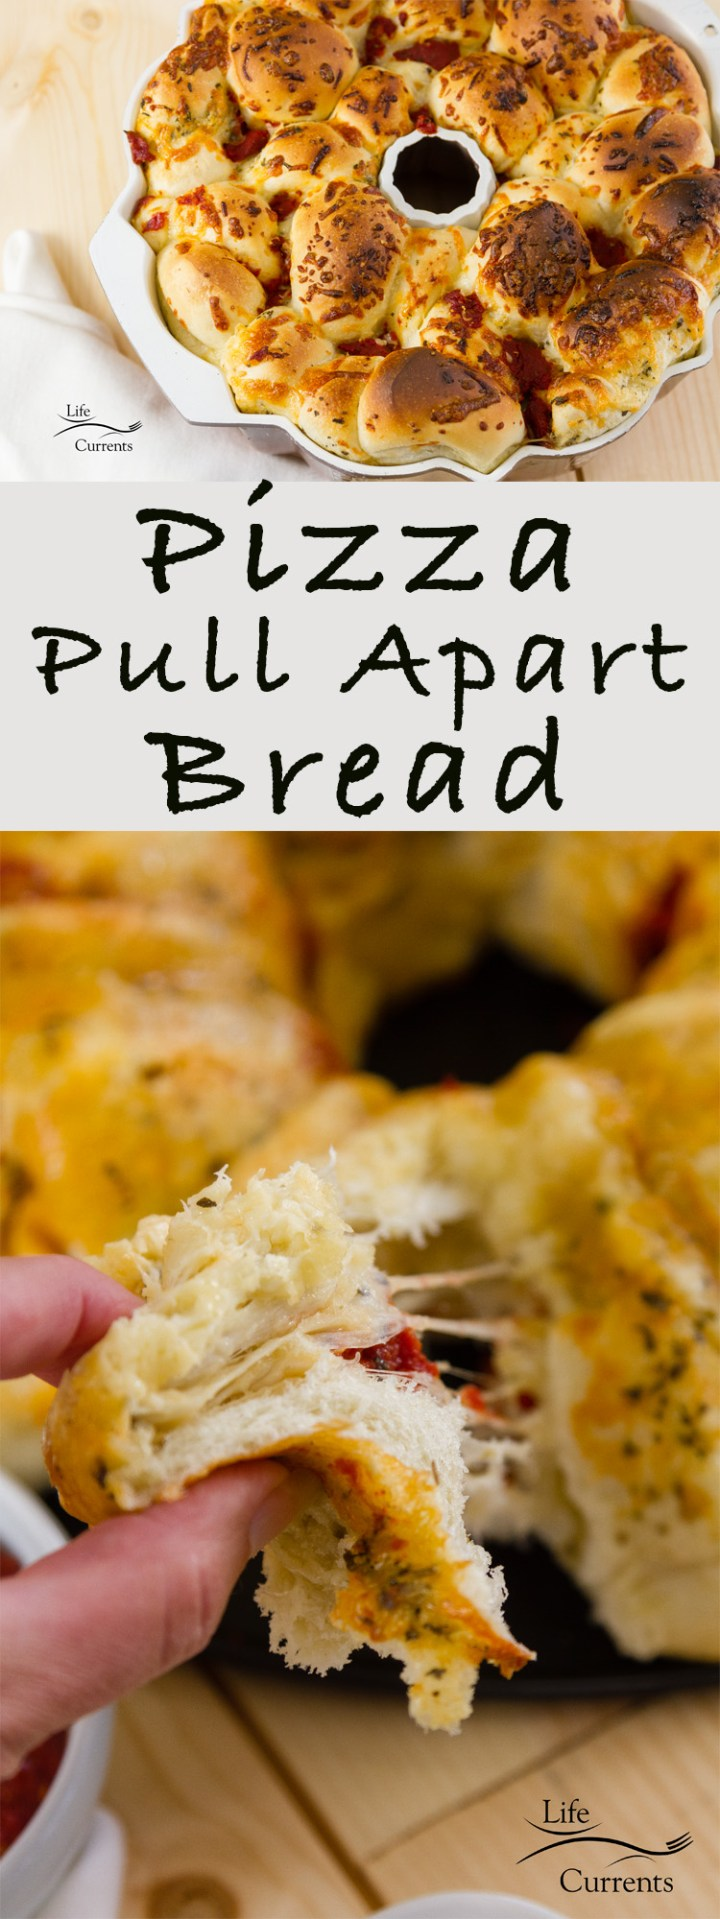 This Pizza Pull Apart Bread is the bomb! Easy to make, and super delicious! Besides, isn't it fun to pull things apart and eat them with your fingers!